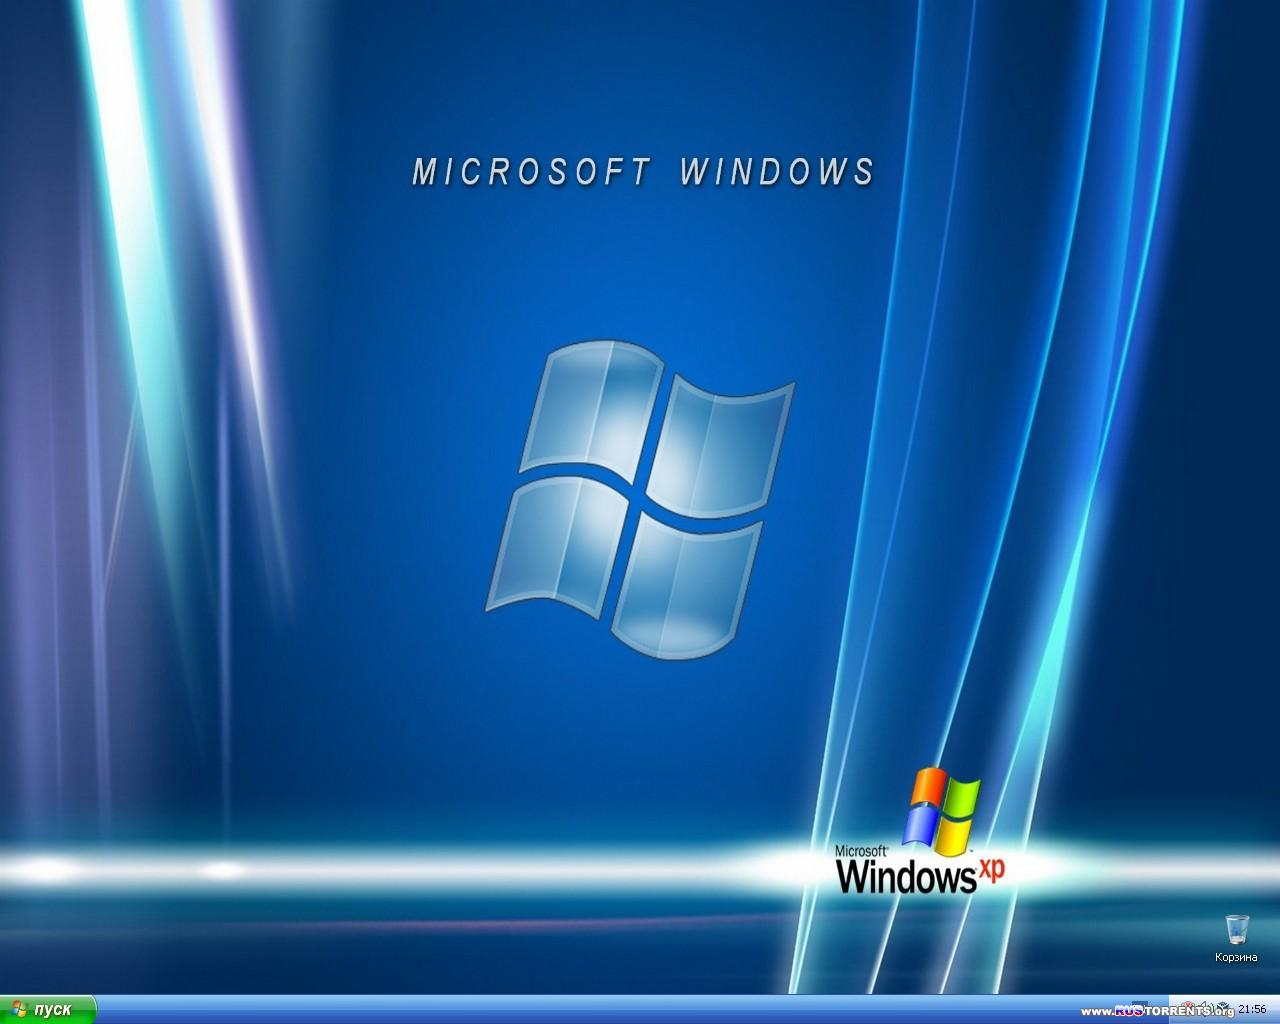 Windows XP Pro SP3 x86 Elgujakviso Edition Final v.24.04.14 Final RUS